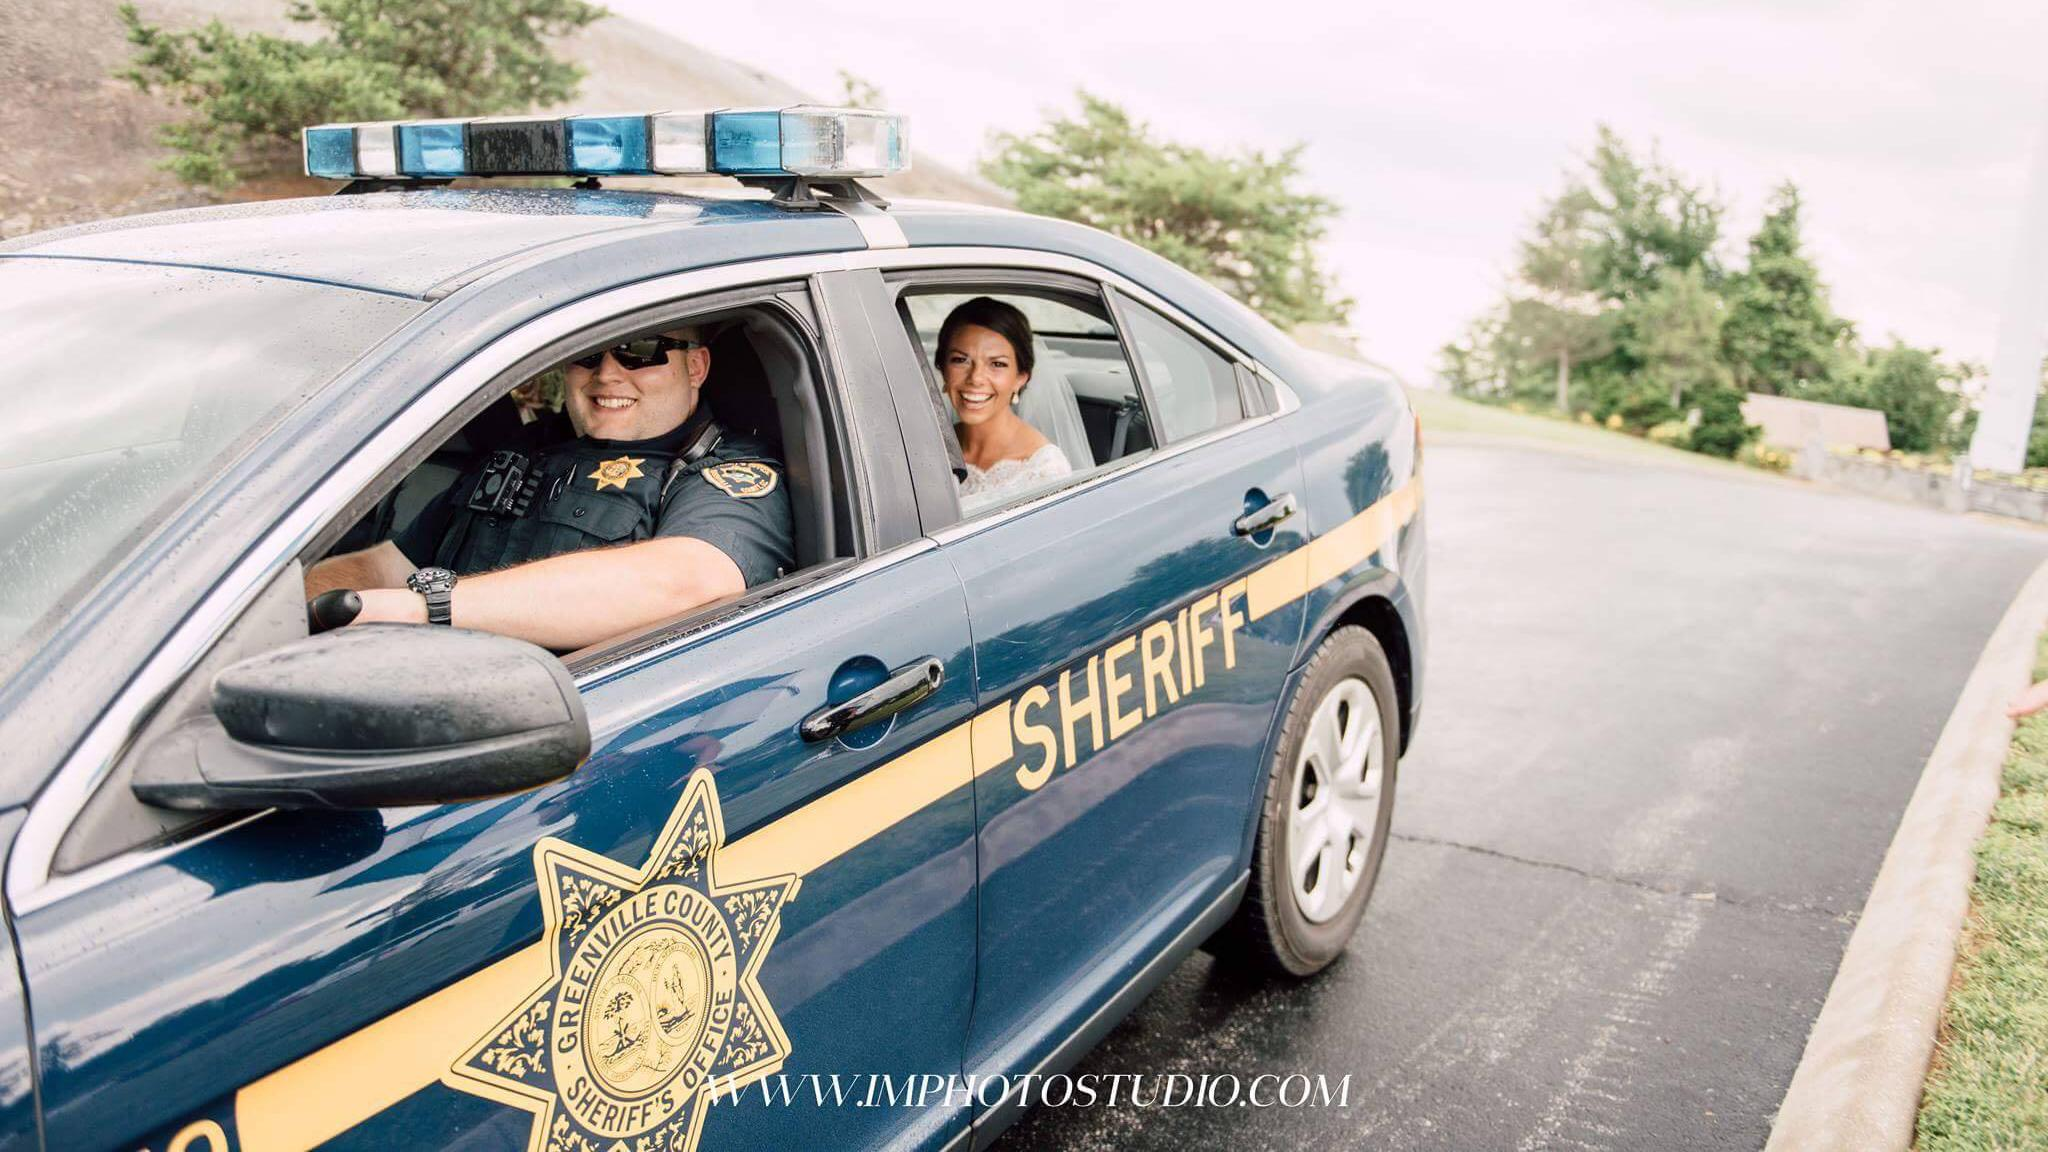 (Ina McConnell/IM Photo Studio/Greenville County Sheriff's Office)